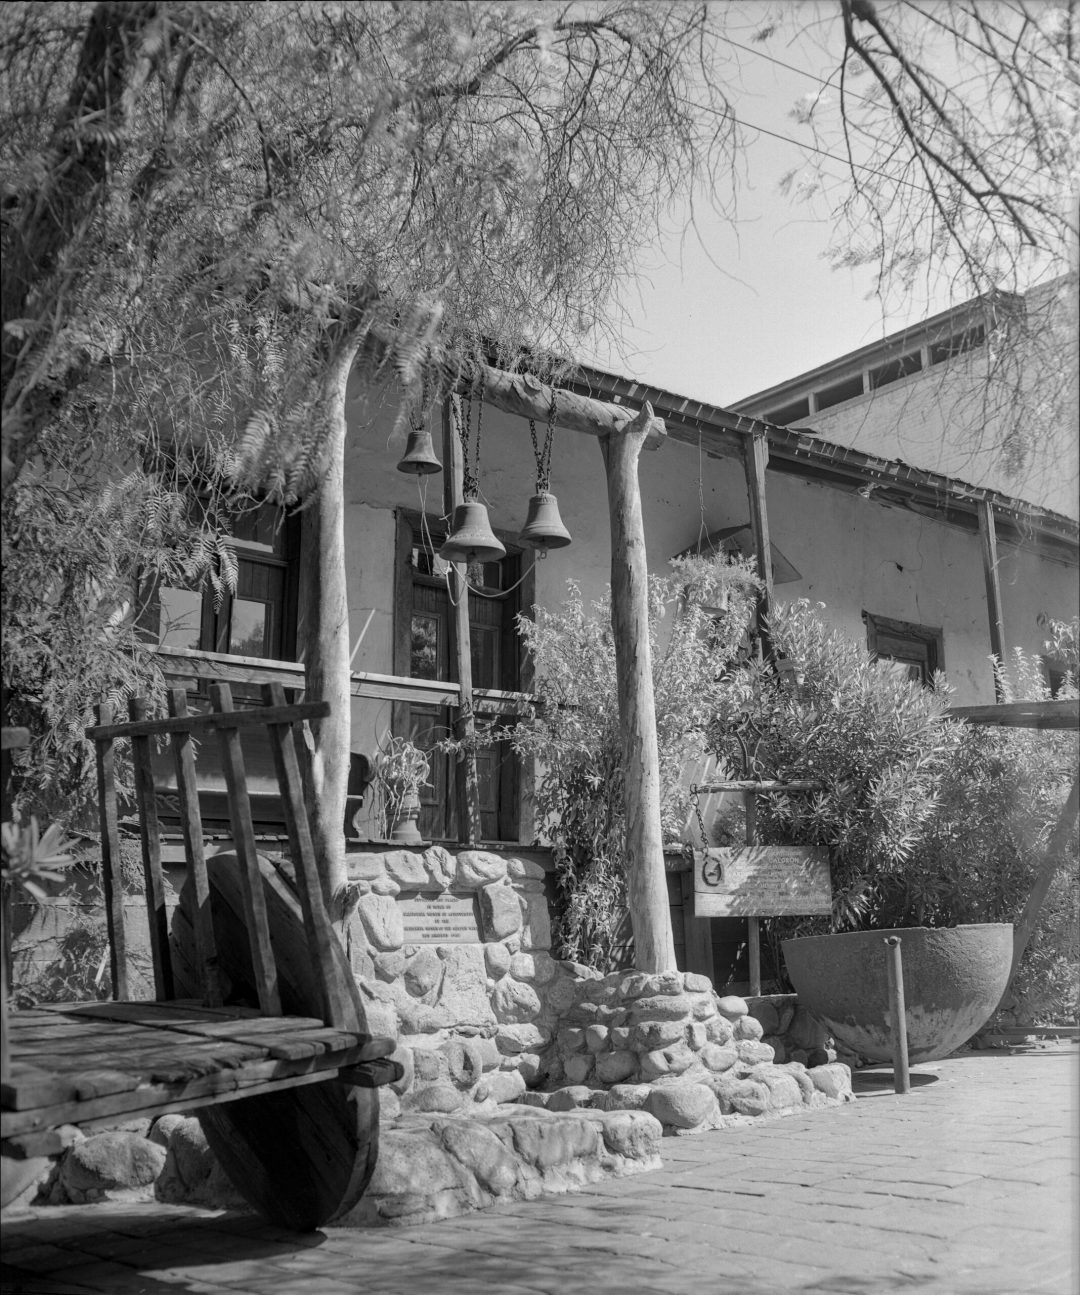 Avila Adobe, 1956. Front porch and marker of Avila Adobe on Olvera Street, Los Angeles, University of California, Los Angeles. Library Special Collections, Los Angeles Times photographic archive.